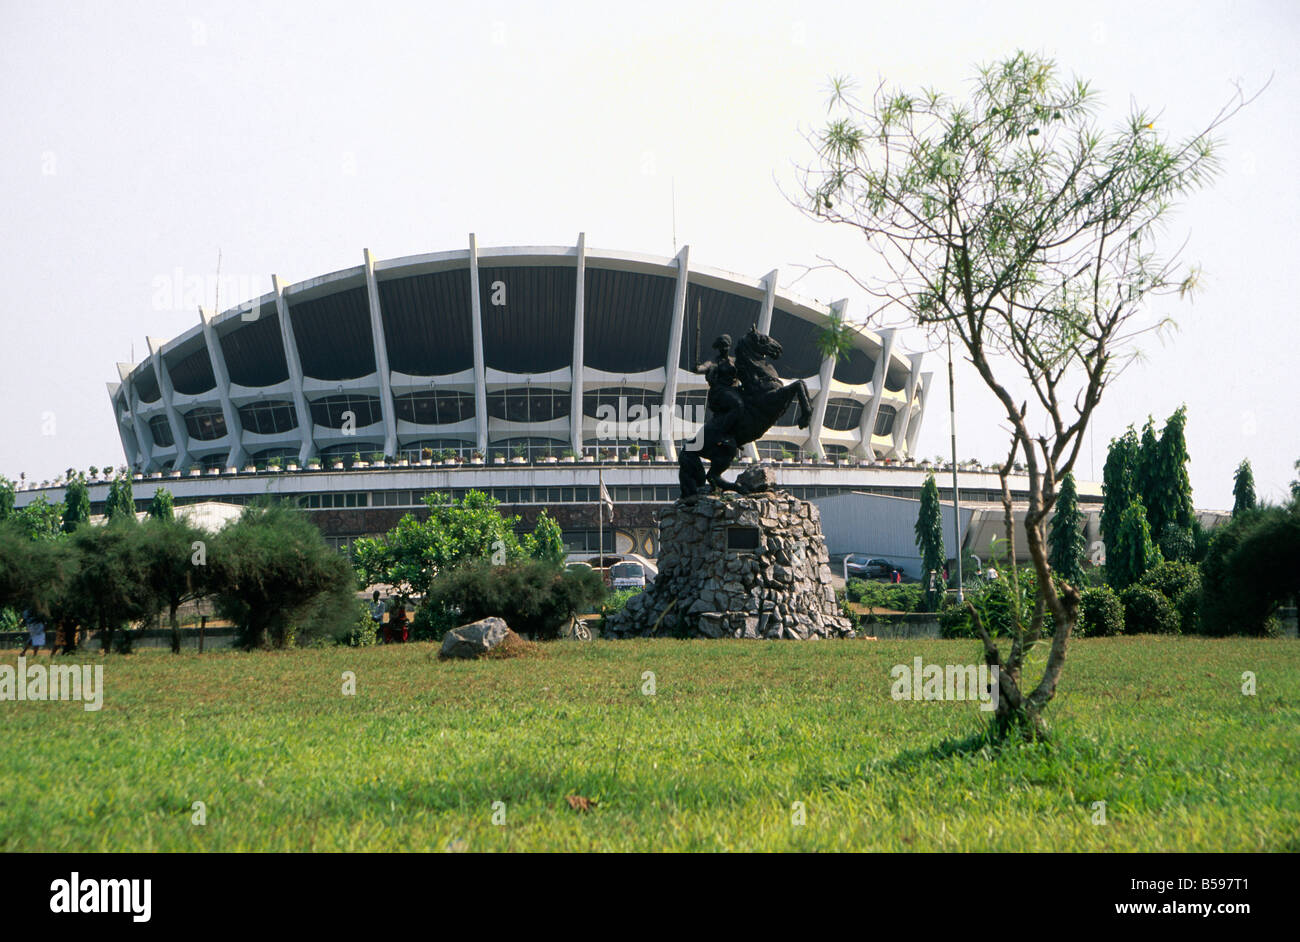 Palace of Culture modern entertainment building in Lagos Nigeria Africa - Stock Image